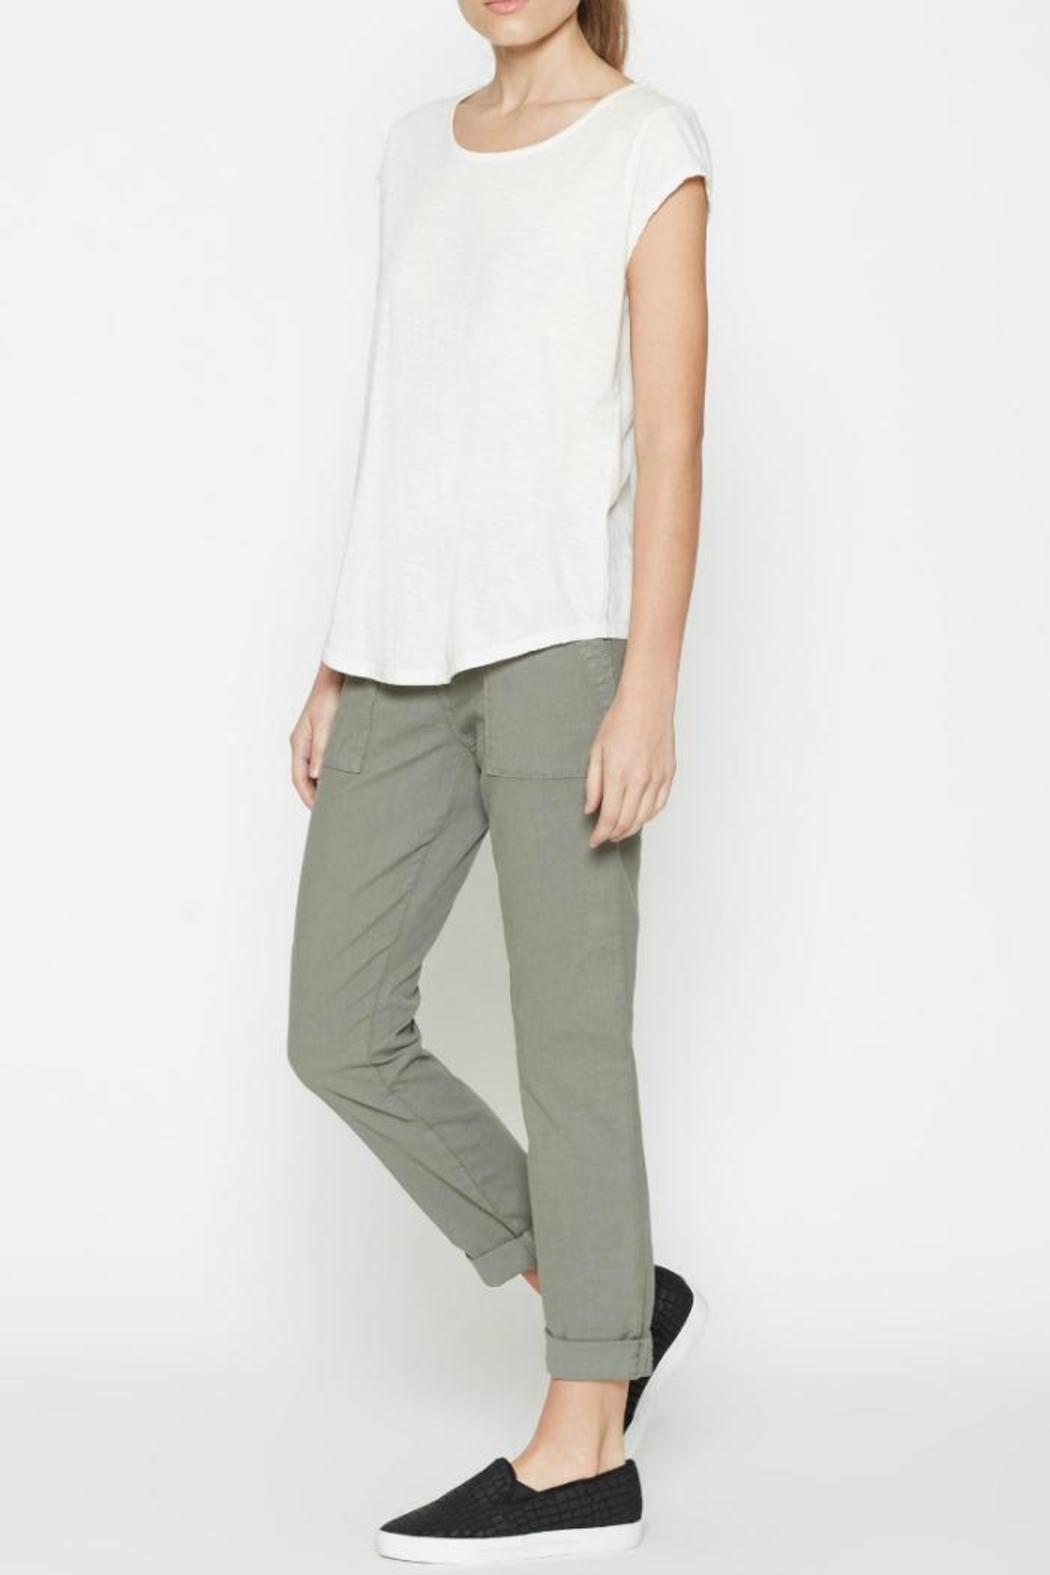 Soft Joie Dillion B Top - Side Cropped Image